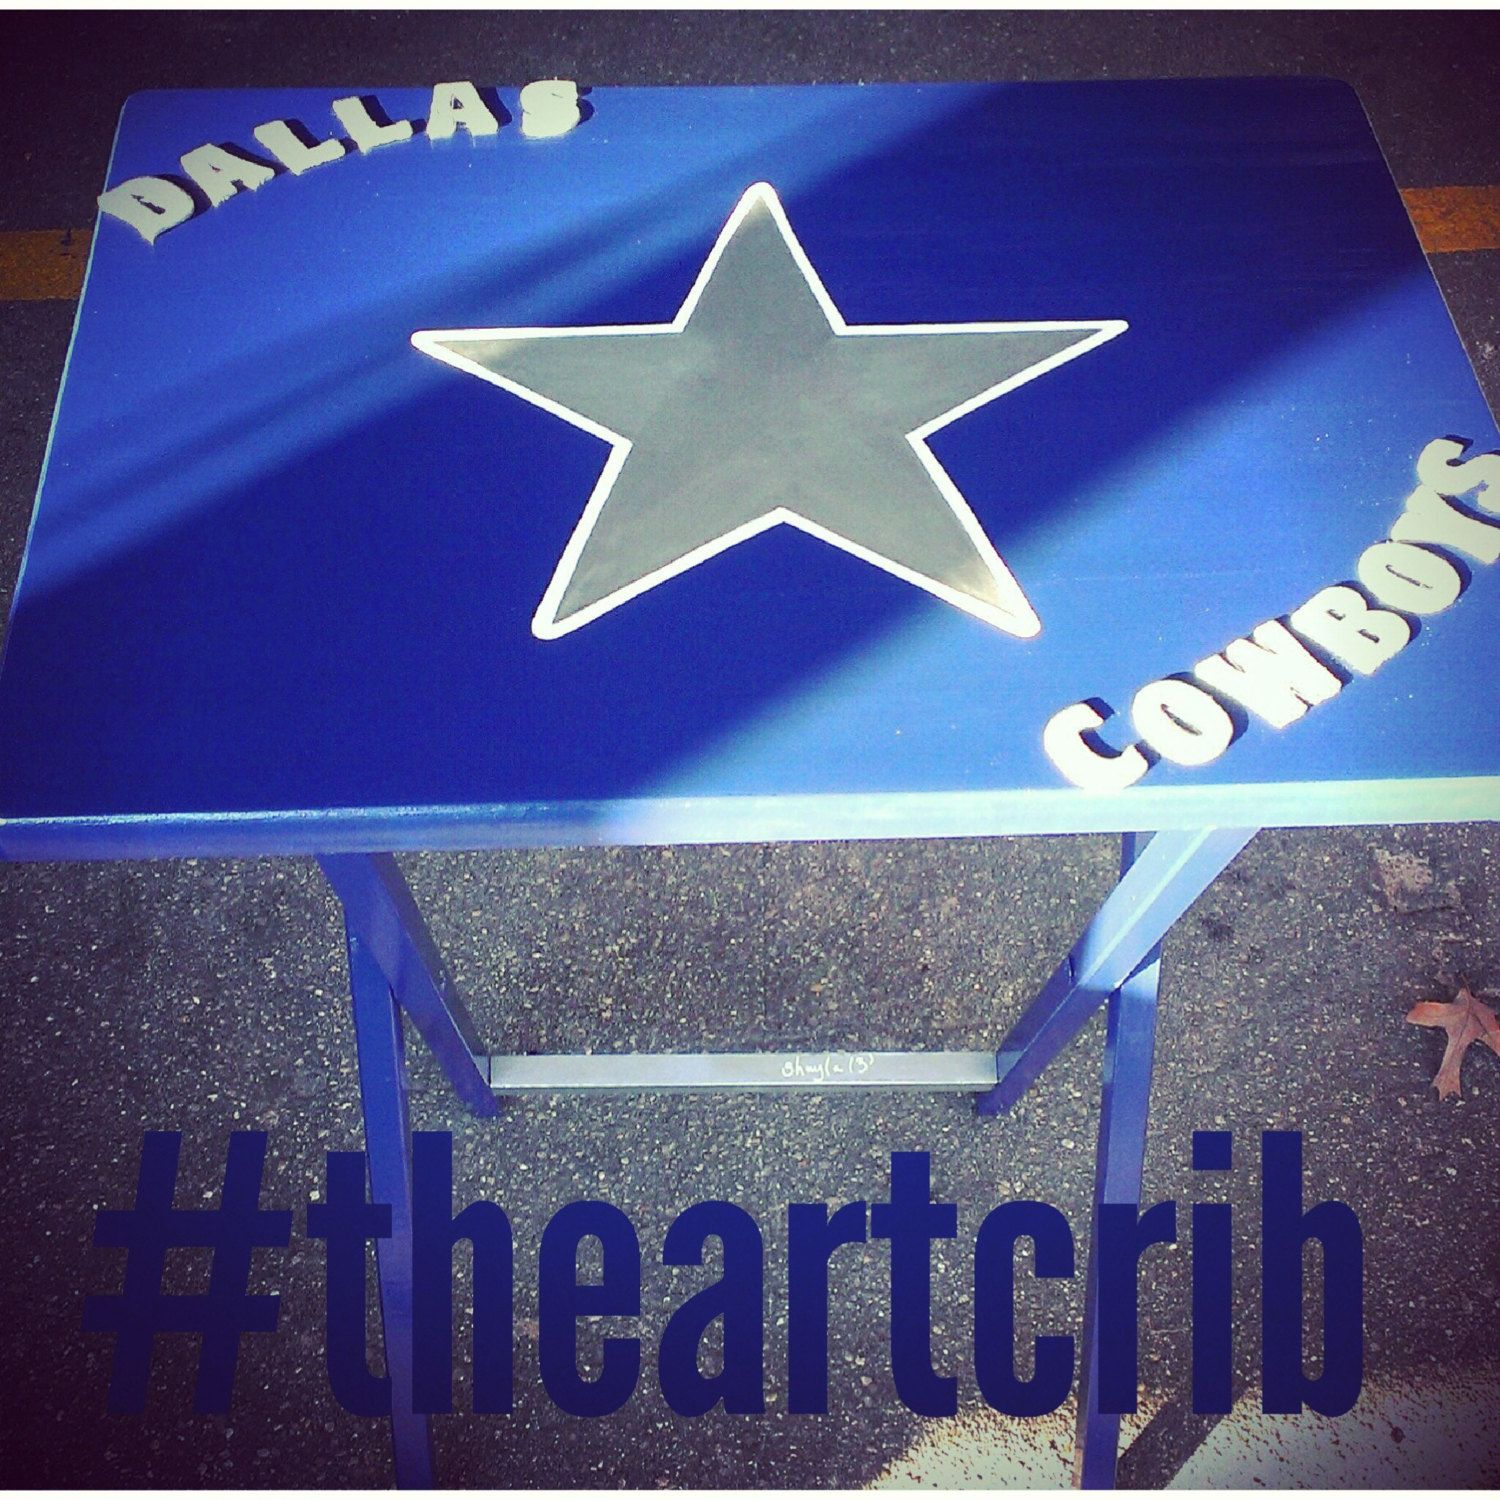 dallas cowboys folding chairs red leather office chair father 39s day gift idea for husband dad boyfriend custom